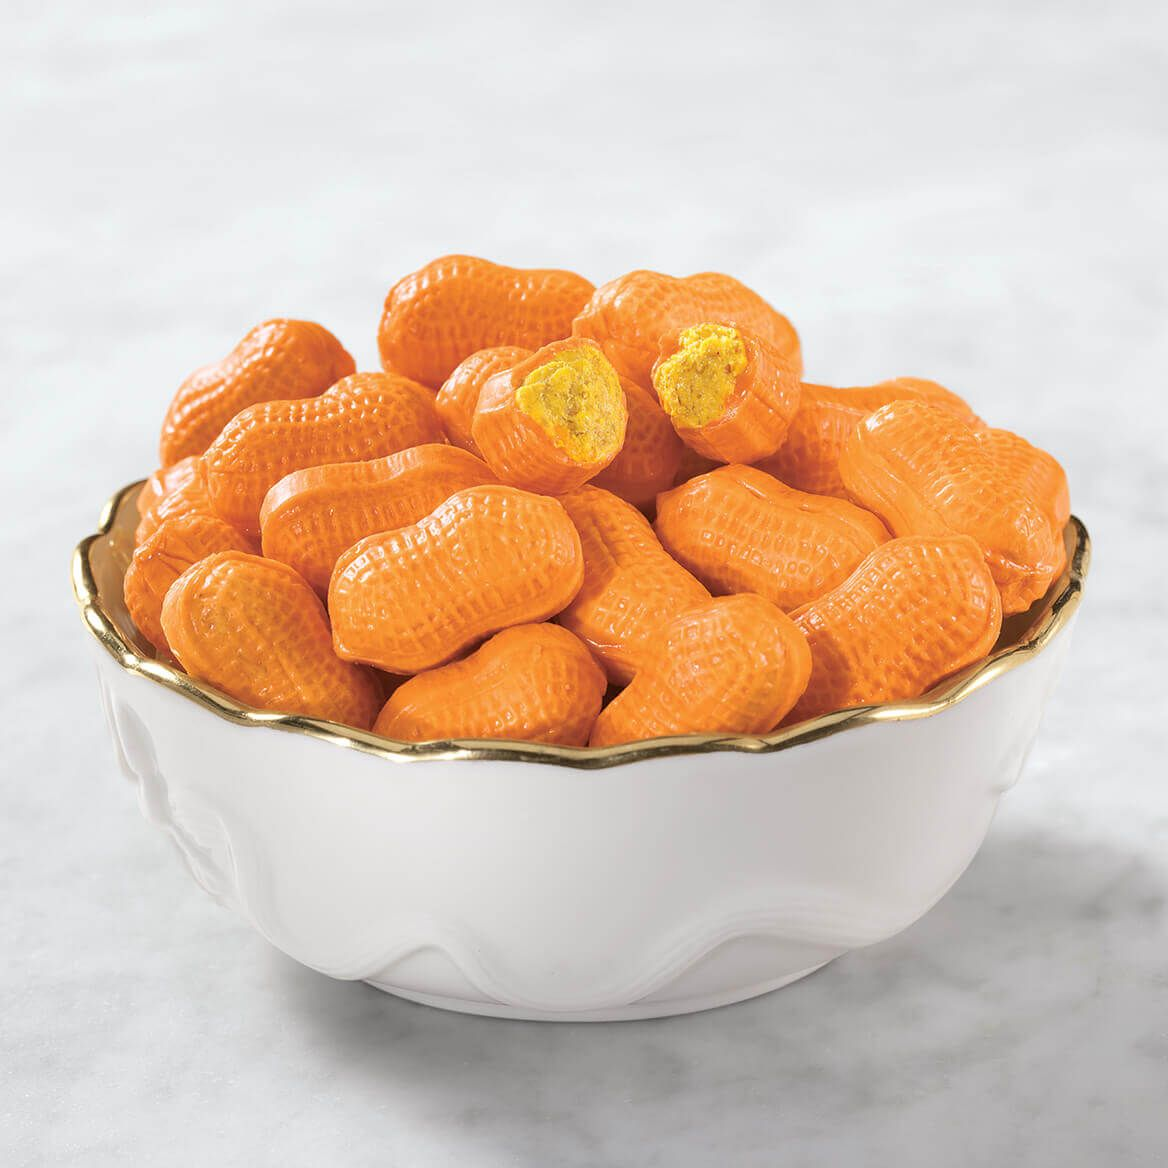 Old Fashioned Filled Peanut Candy, 12 oz.-369146